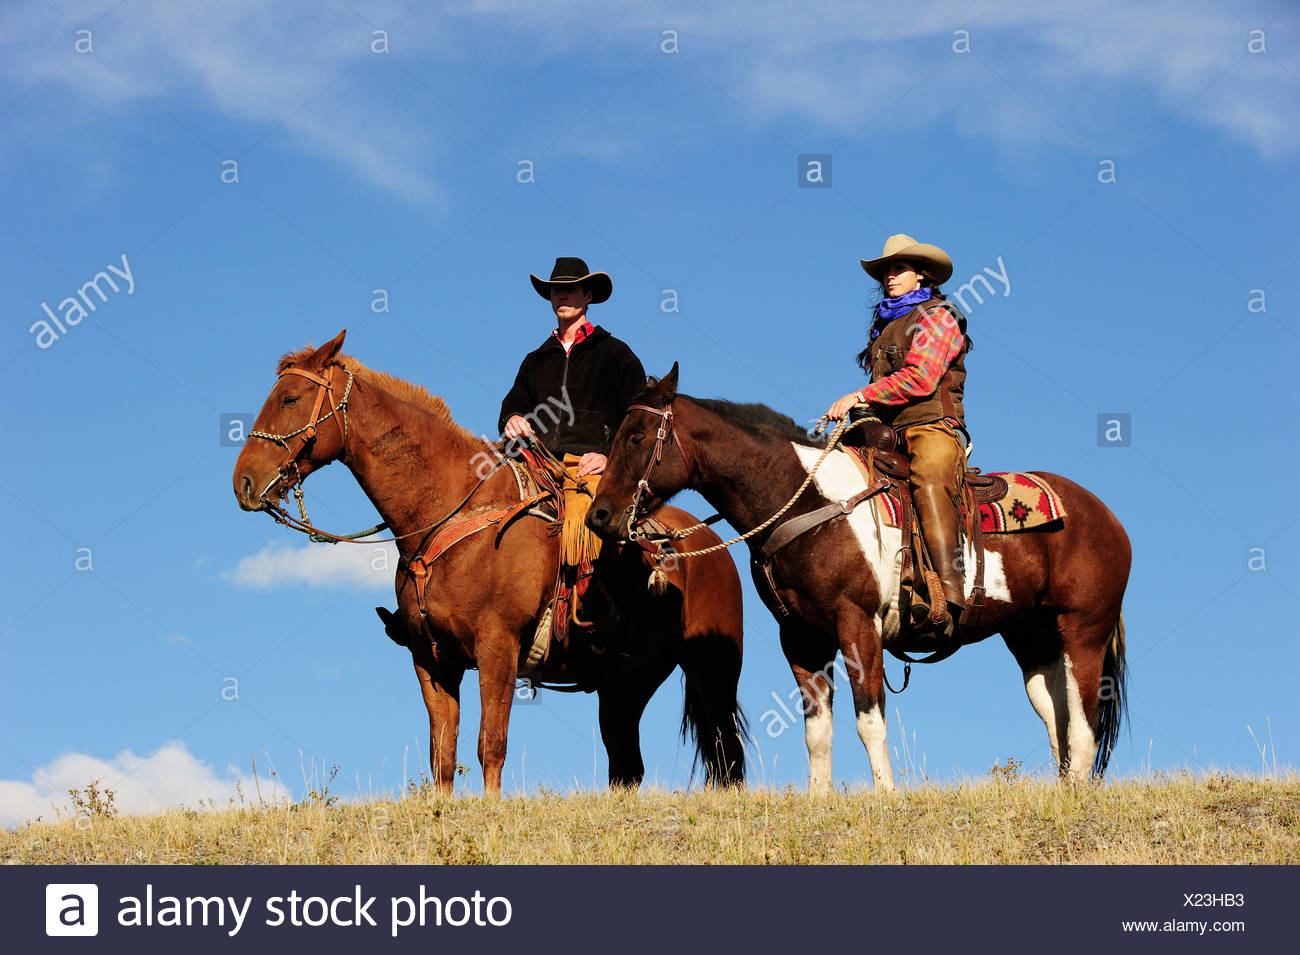 Cowgirl and cowboy on horses looking into the distance, Saskatchewan, Canada, North America Stock Photo